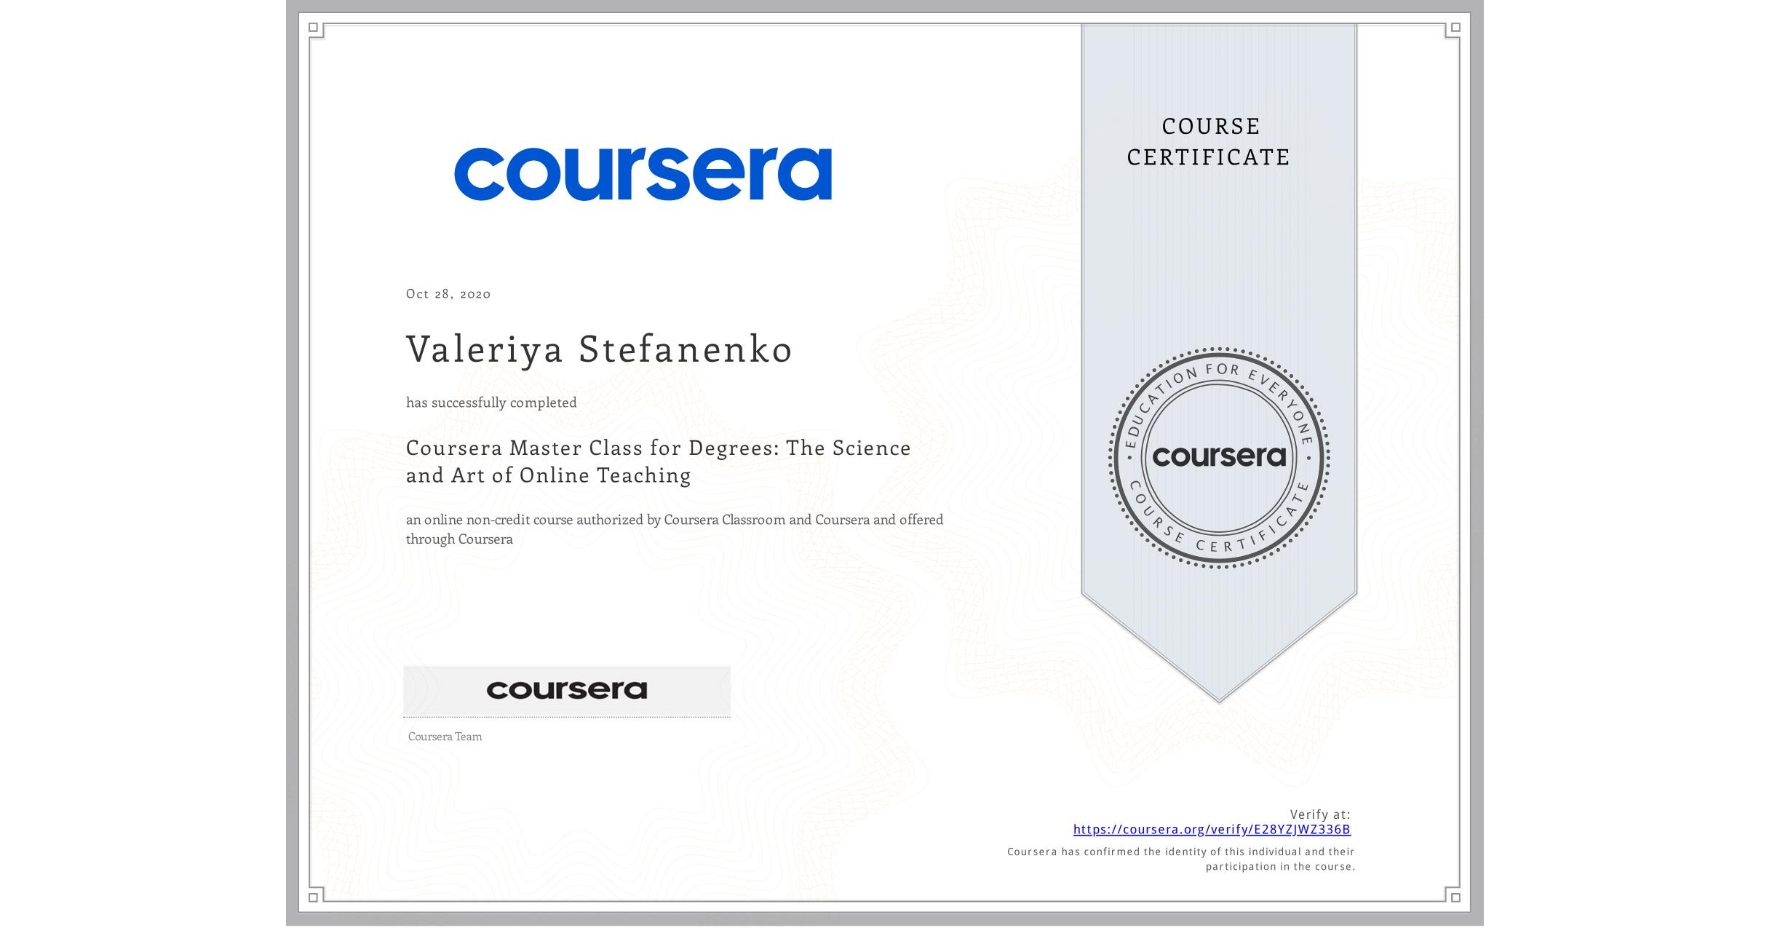 View certificate for Valeriya Stefanenko, Coursera Master Class for Degrees: The Science and Art of Online Teaching, an online non-credit course authorized by Coursera and offered through Coursera